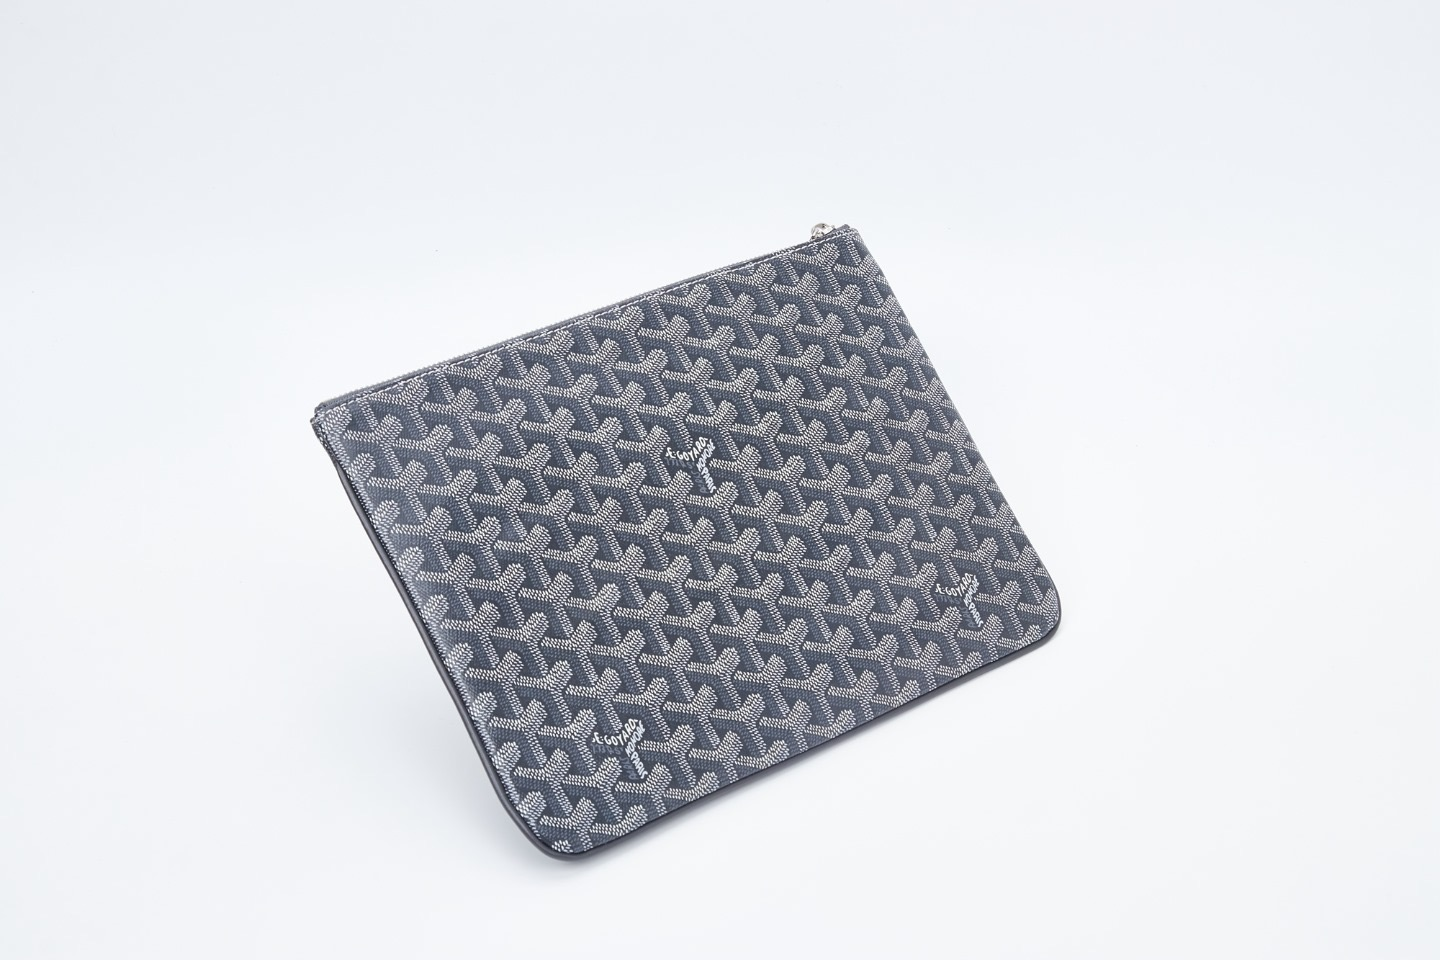 GOYARD CLUTCH big 40*30cm. small 30*20cm